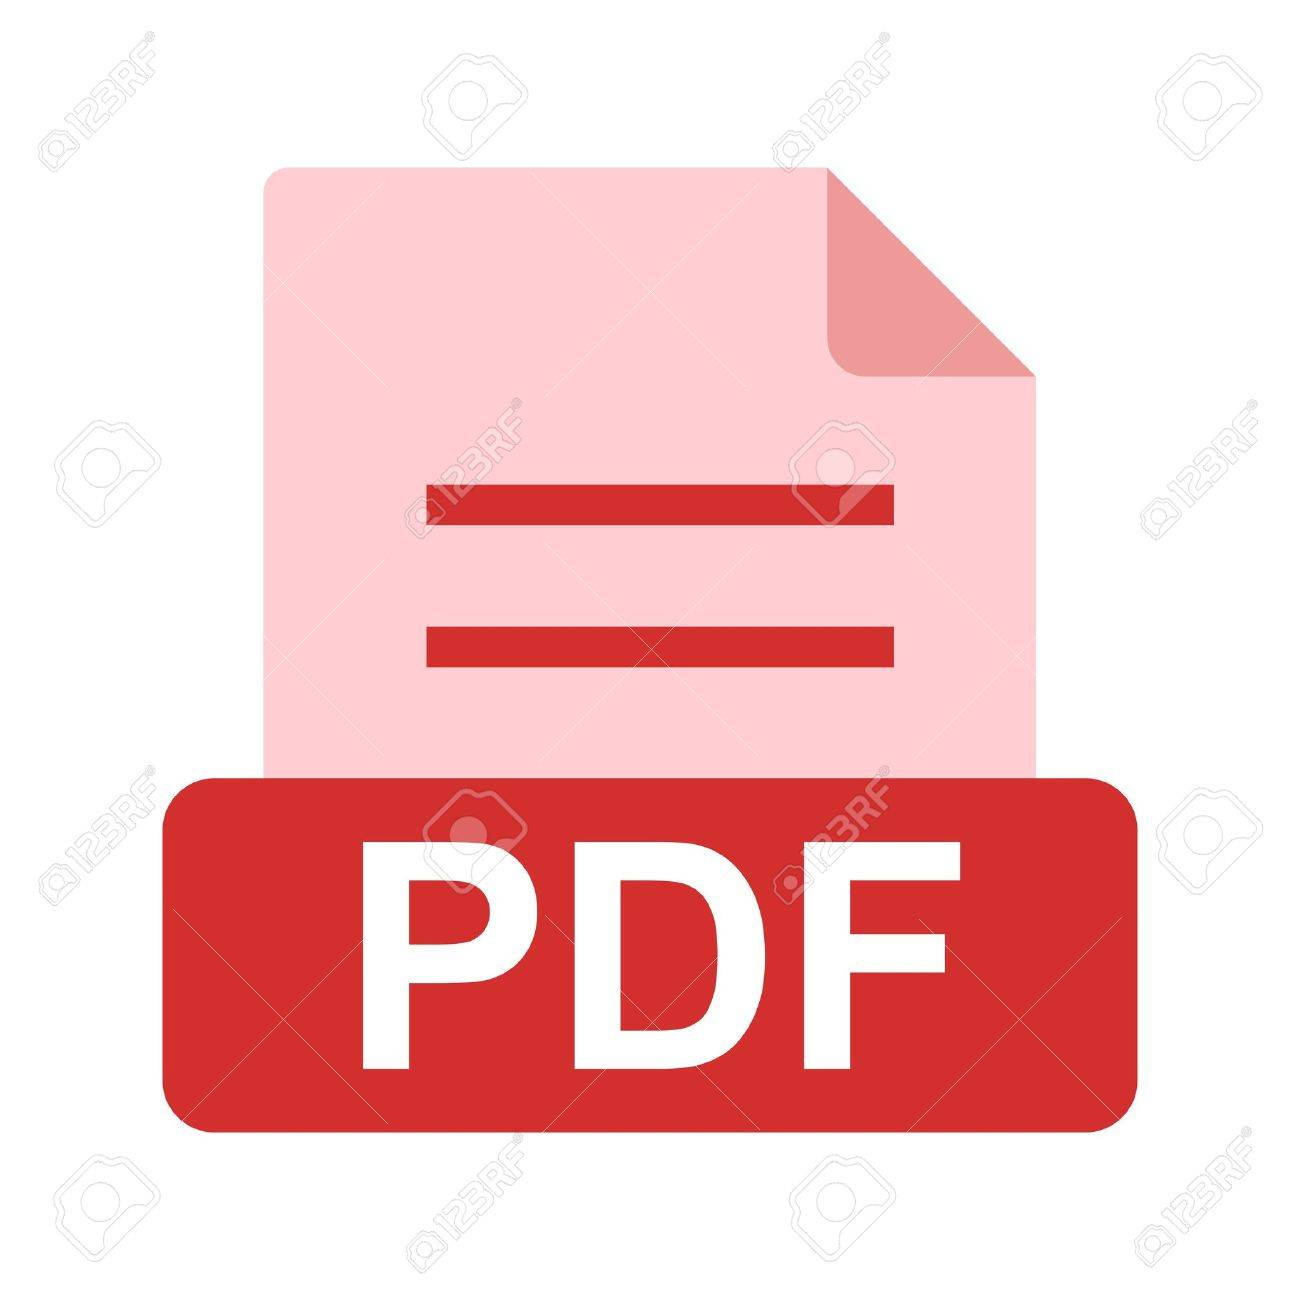 hight resolution of pdf file icon stock vector 45612375